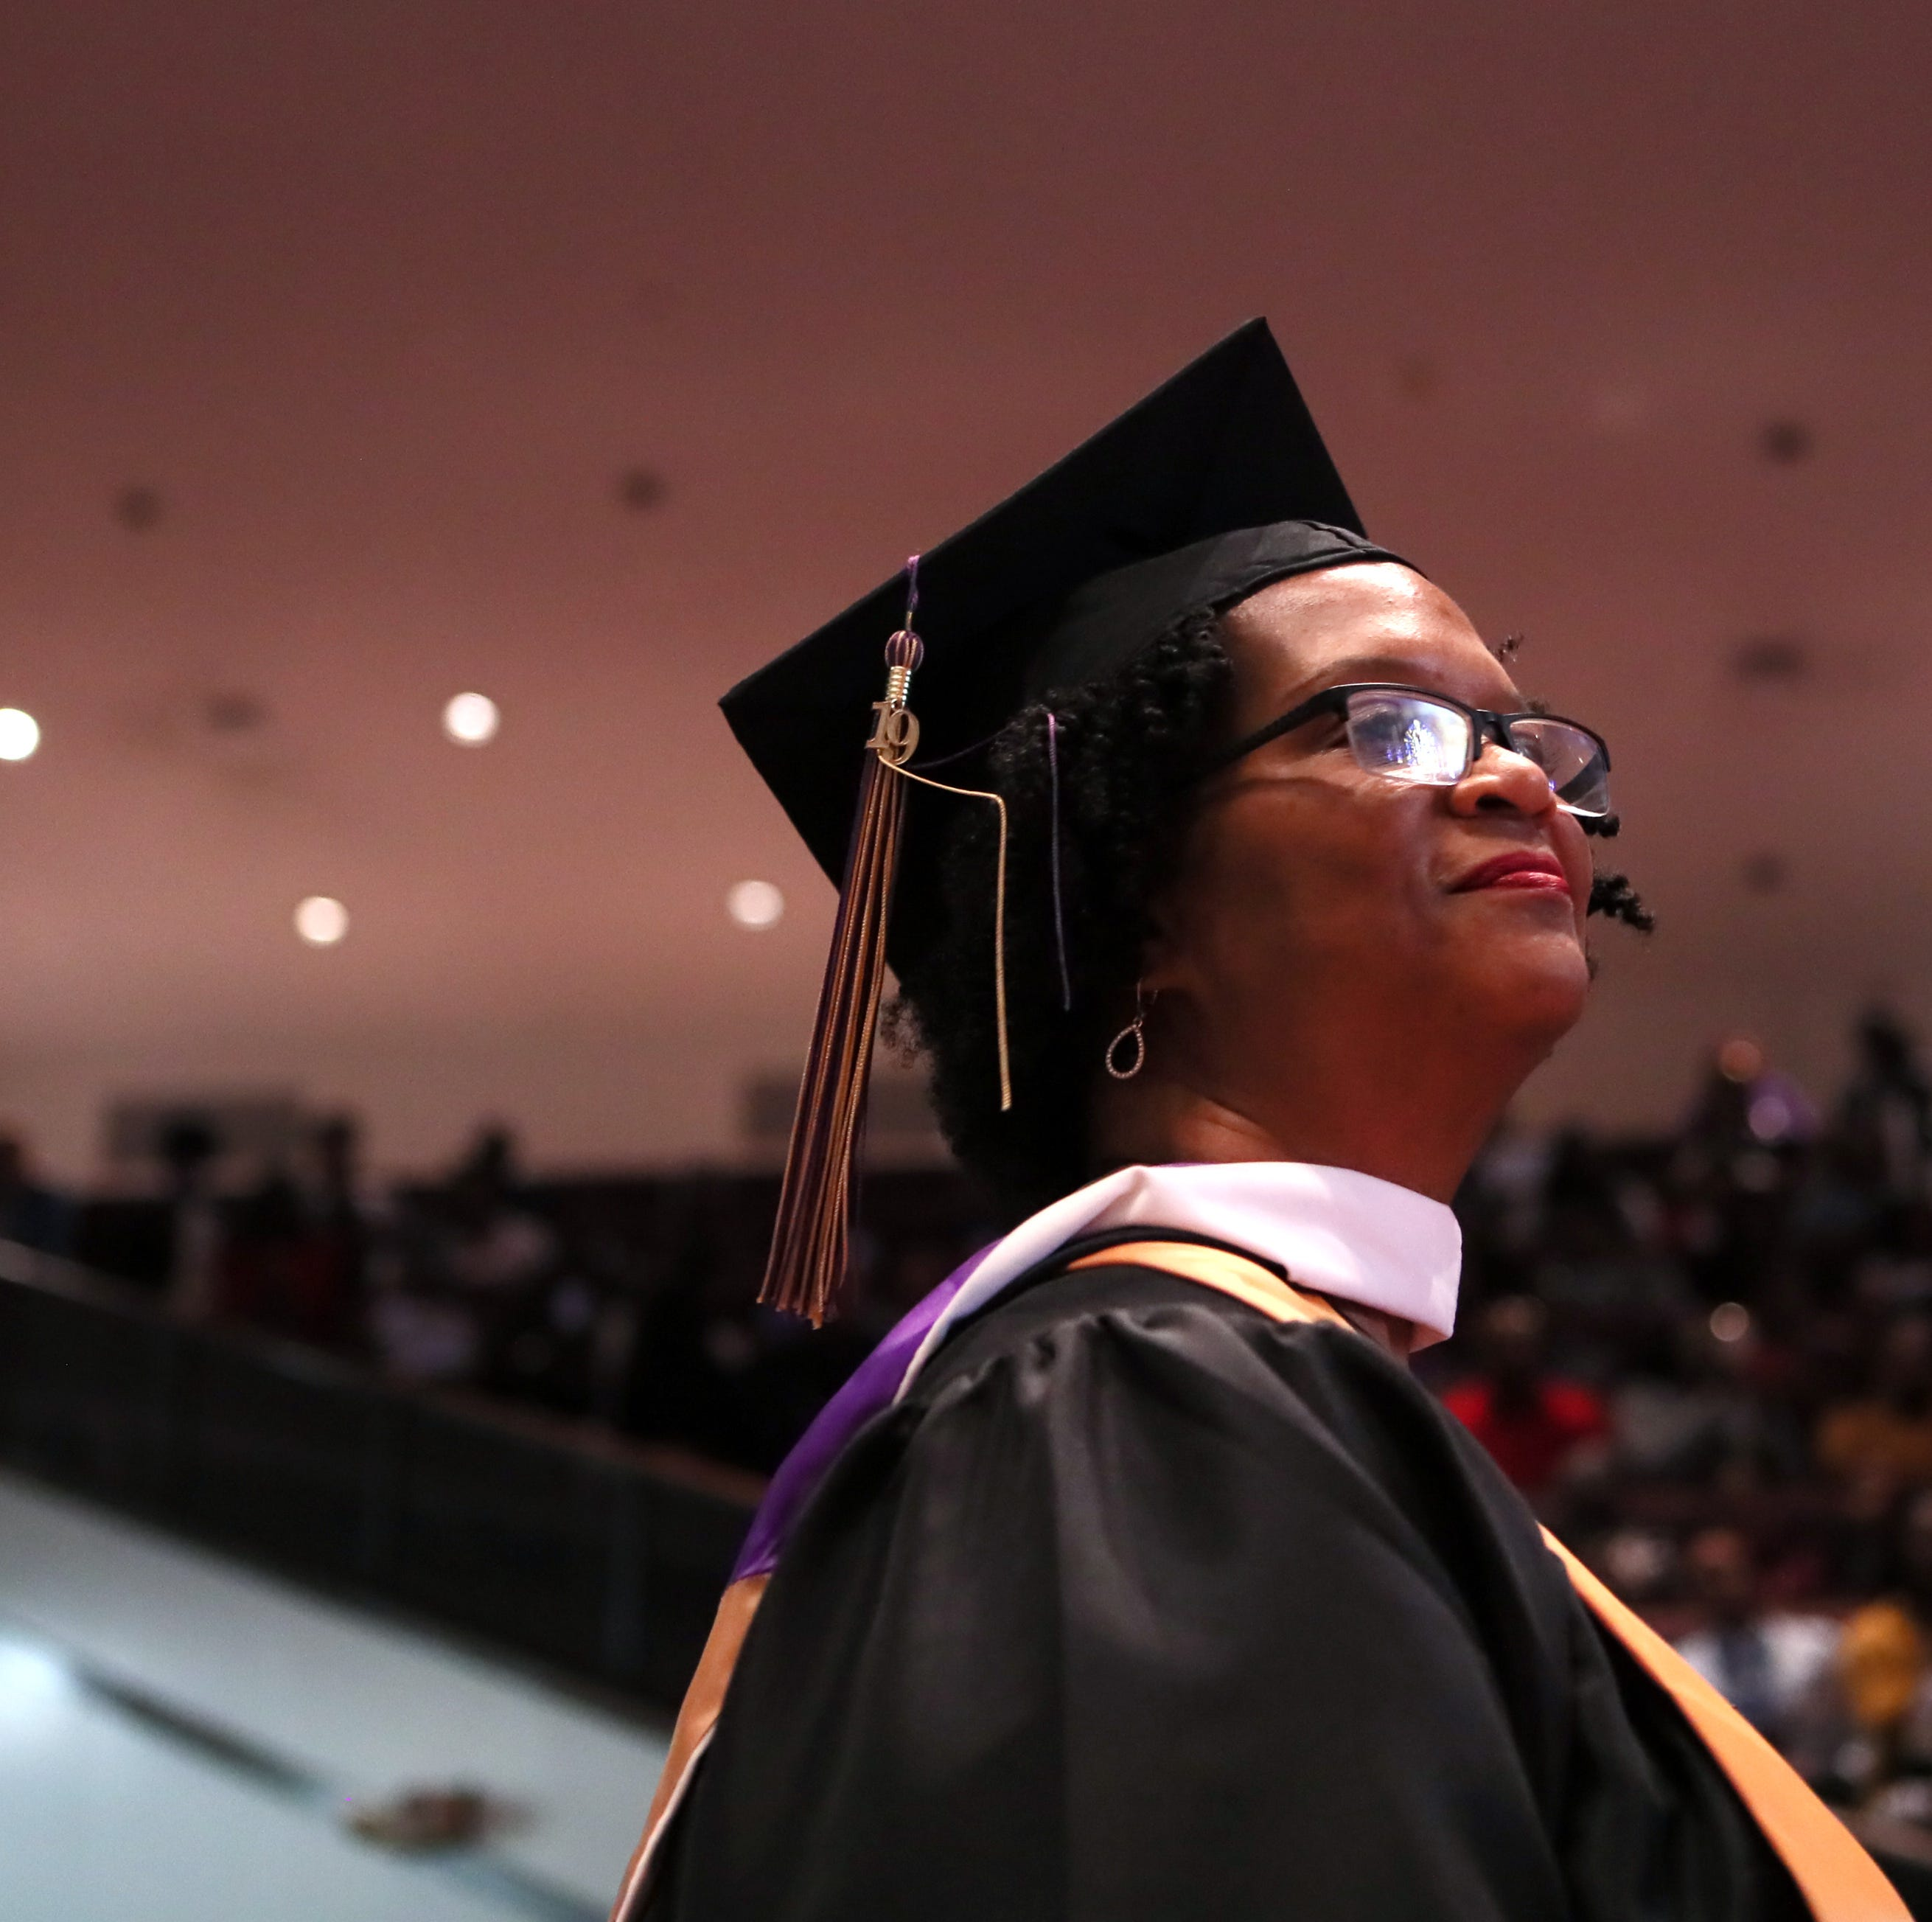 Alison Turner, 59, earns 3 LeMoyne-Owen degrees after decades of setbacks